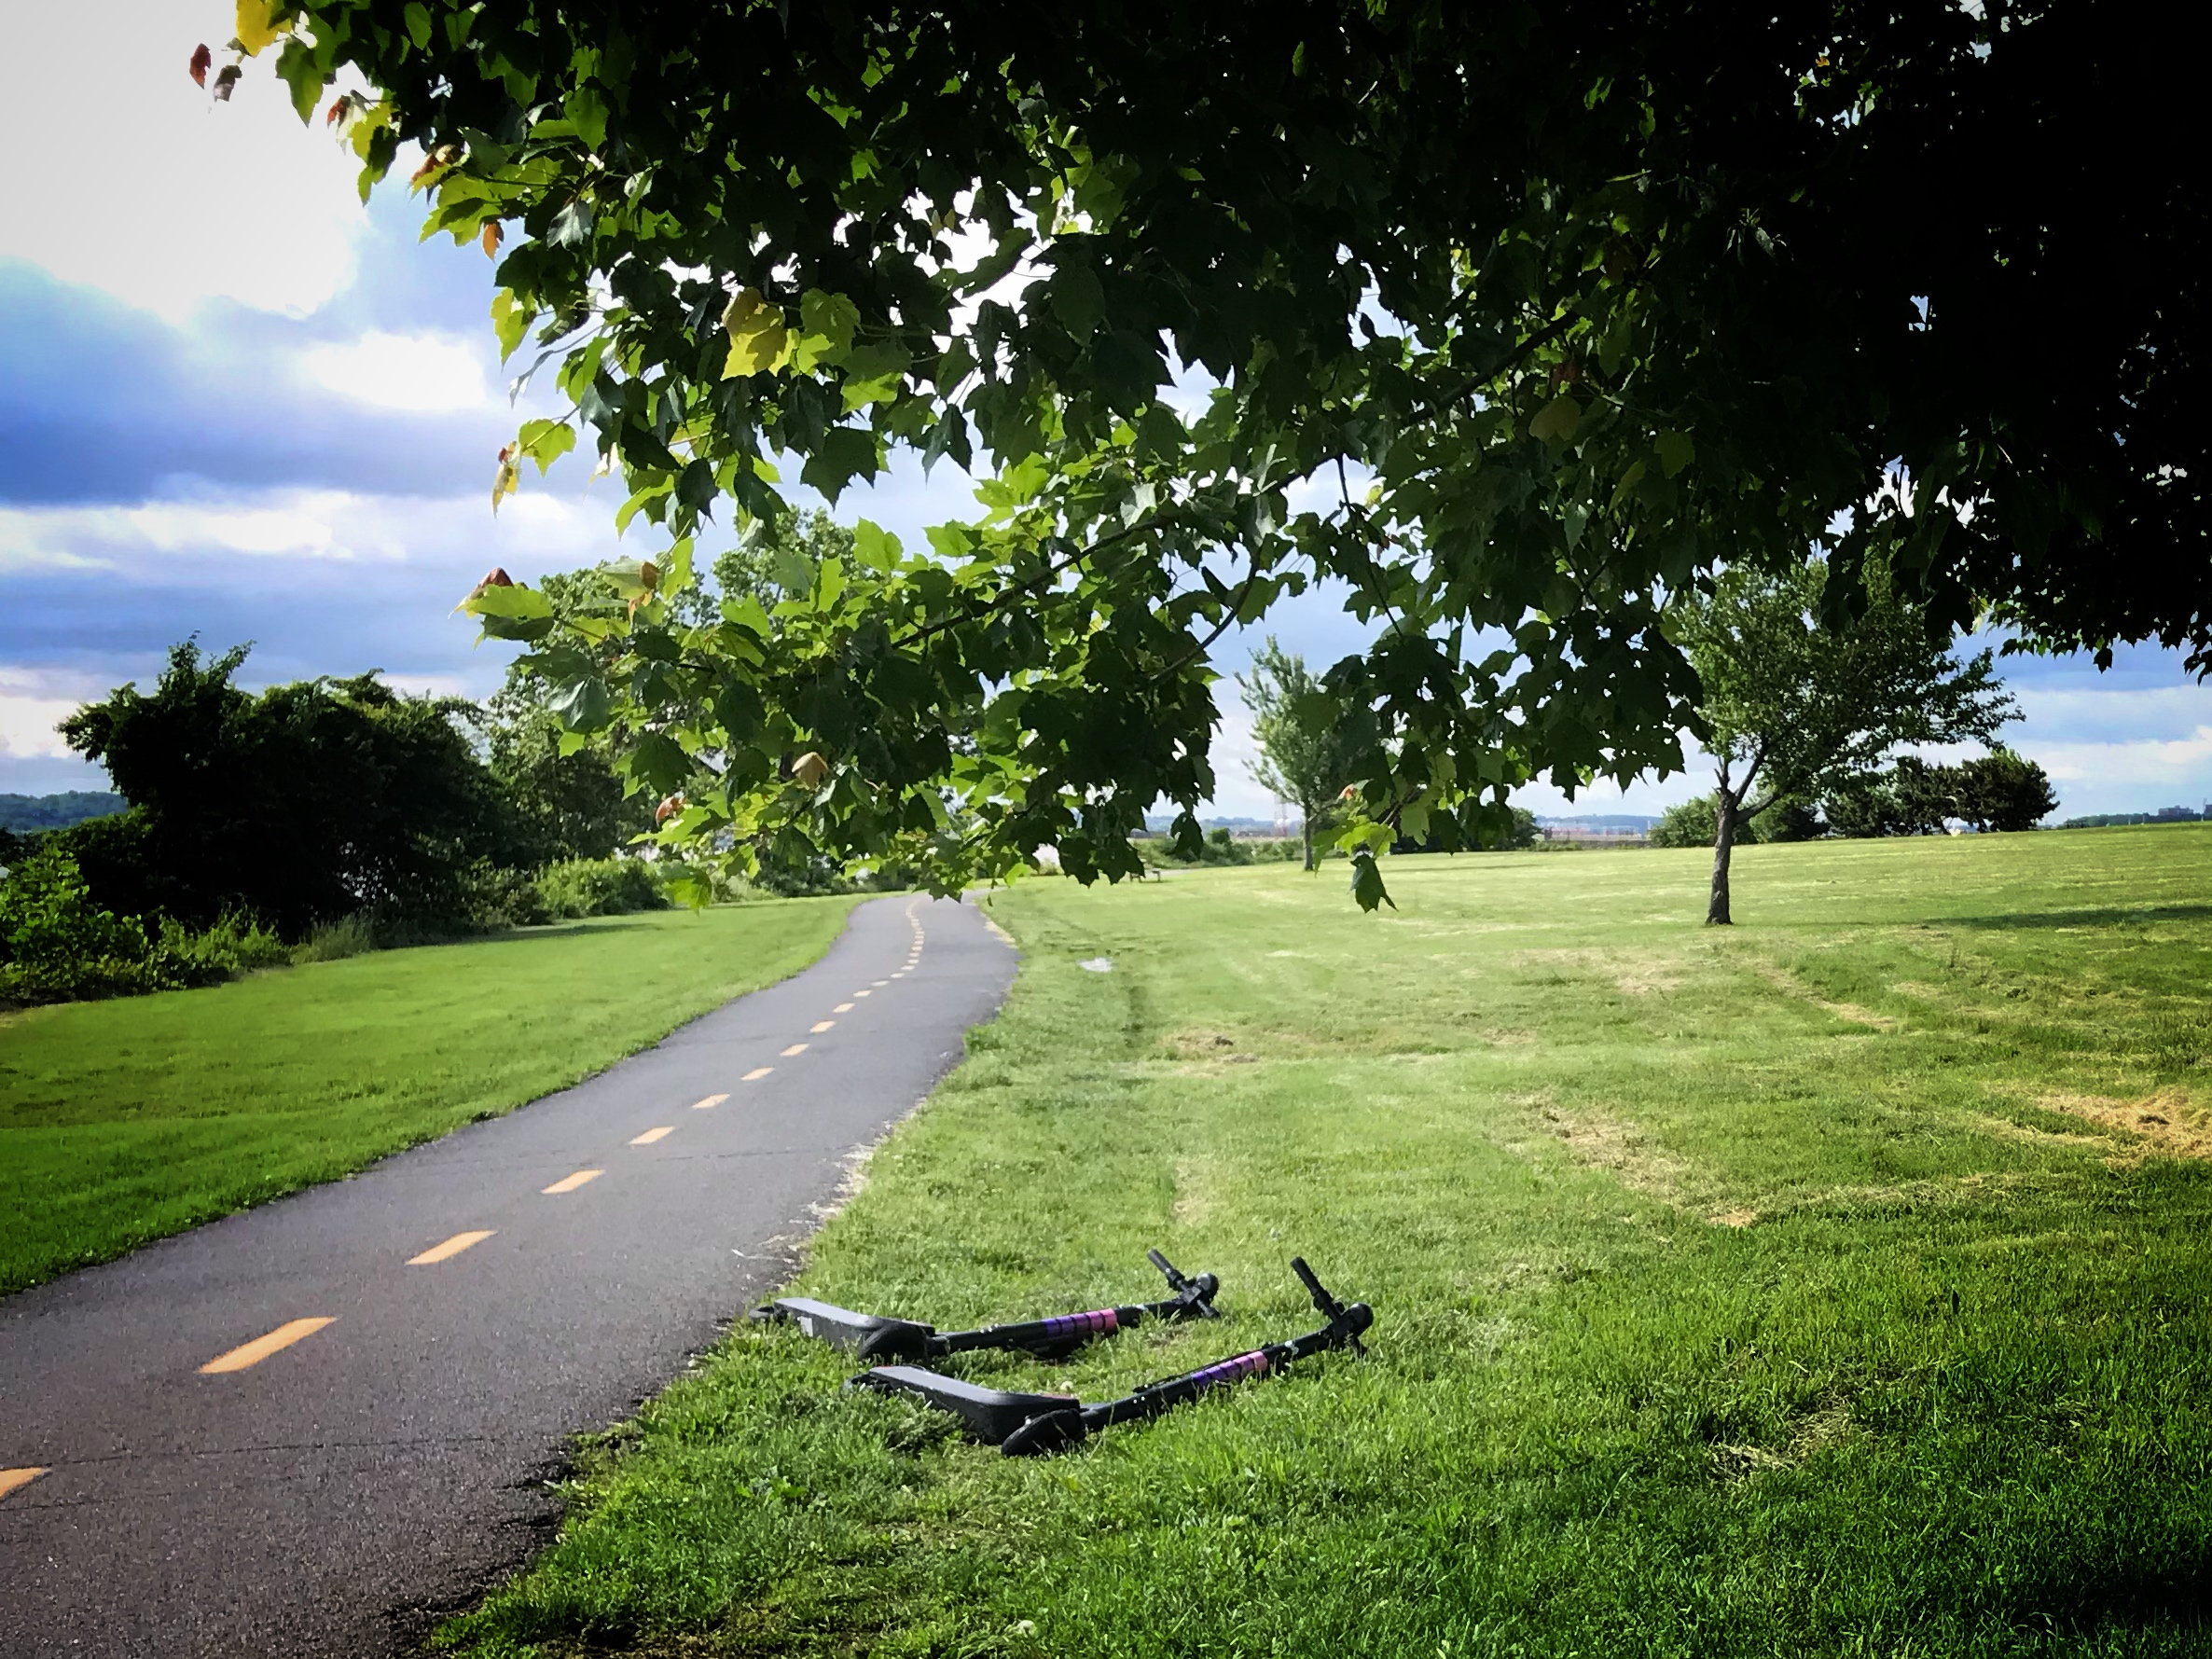 People Are Leaving Scooters All Over a National Park